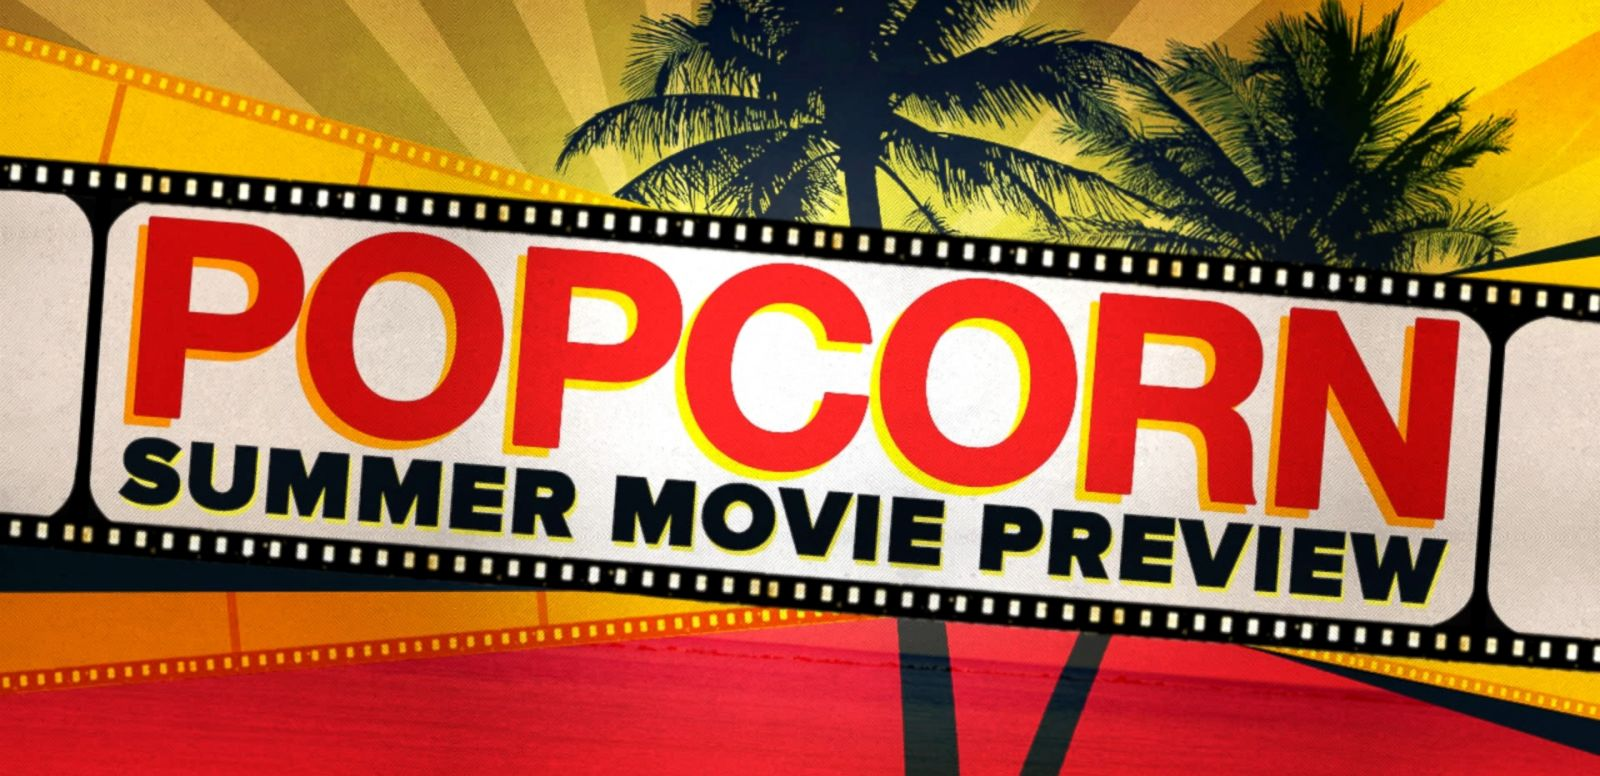 VIDEO: Peter Travers' Summer Movie Preview